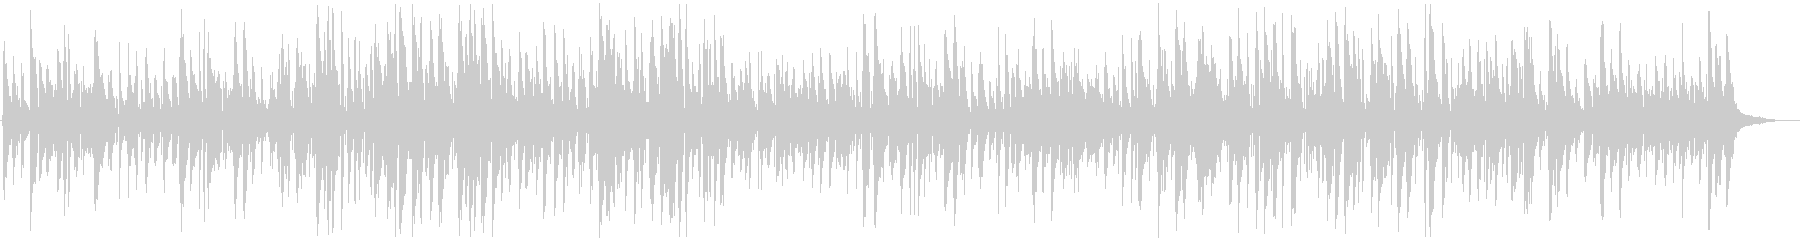 Moist and rhythmic bossa nova jazz piano's unreproduced waveform